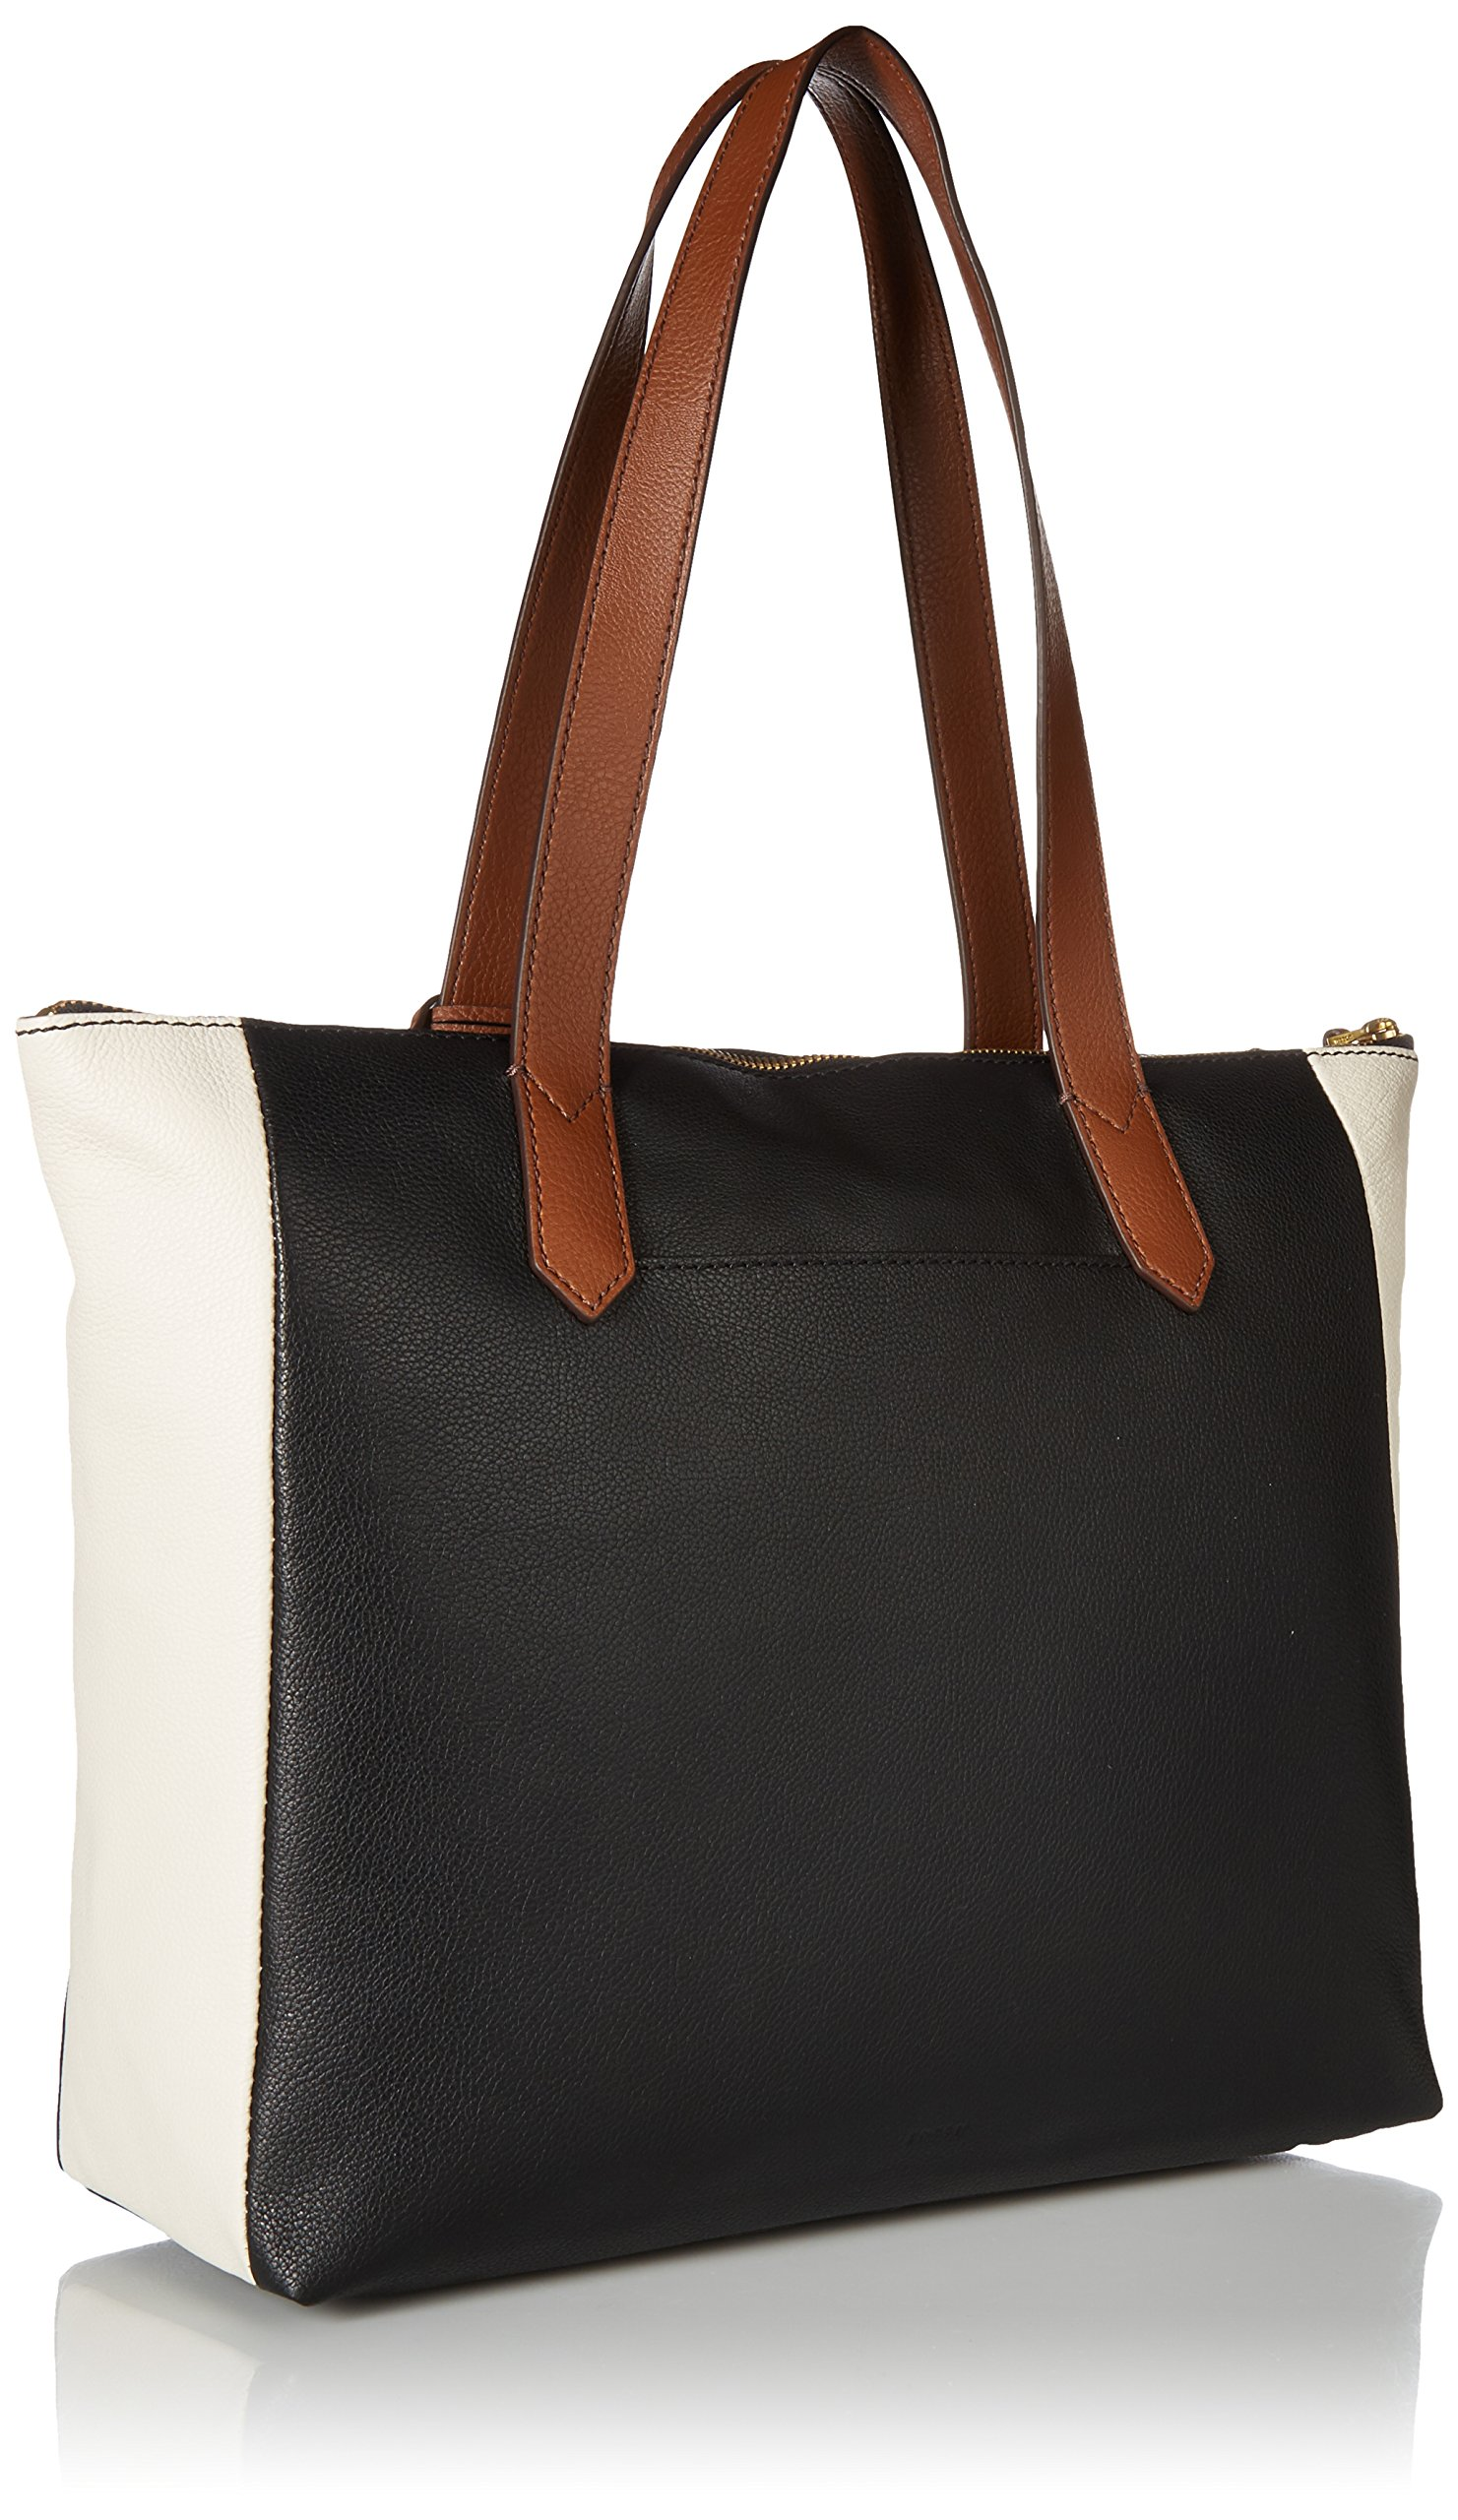 Fossil Fiona E/W Tote Bag, Black/White by Fossil (Image #2)